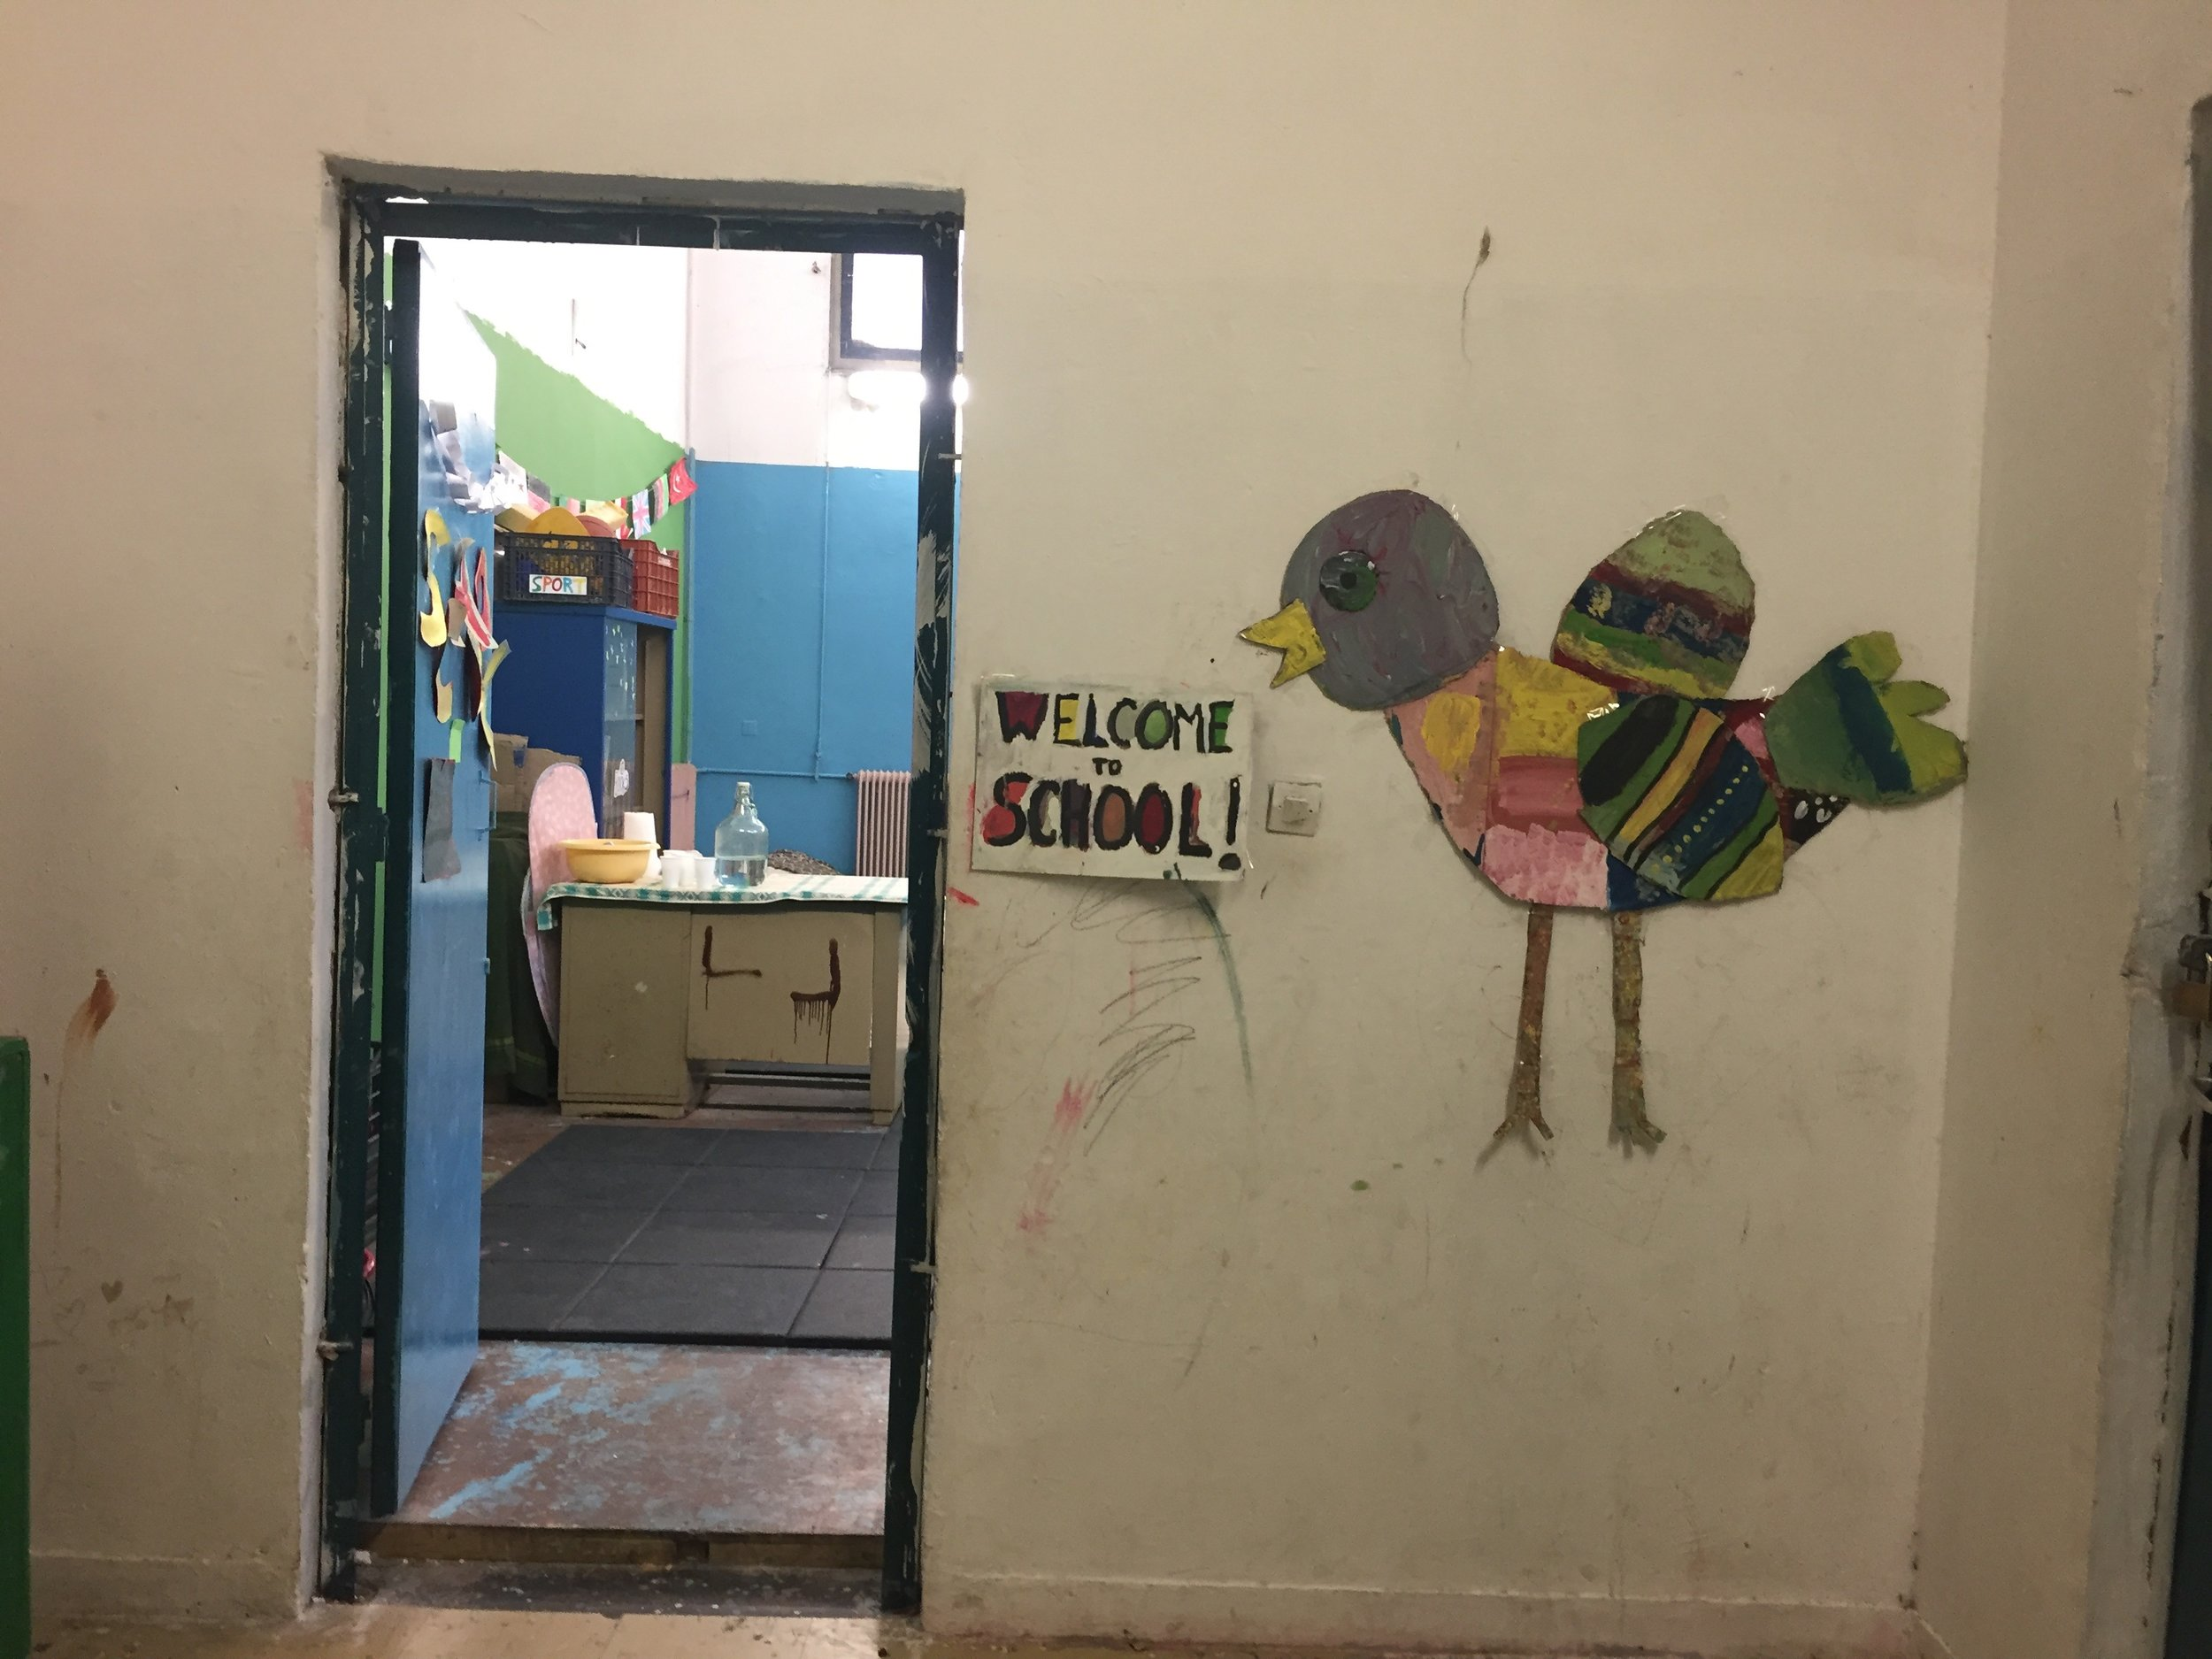 Photo taken by Claudia Broadhead of the former school, now squat, known as '5th School'